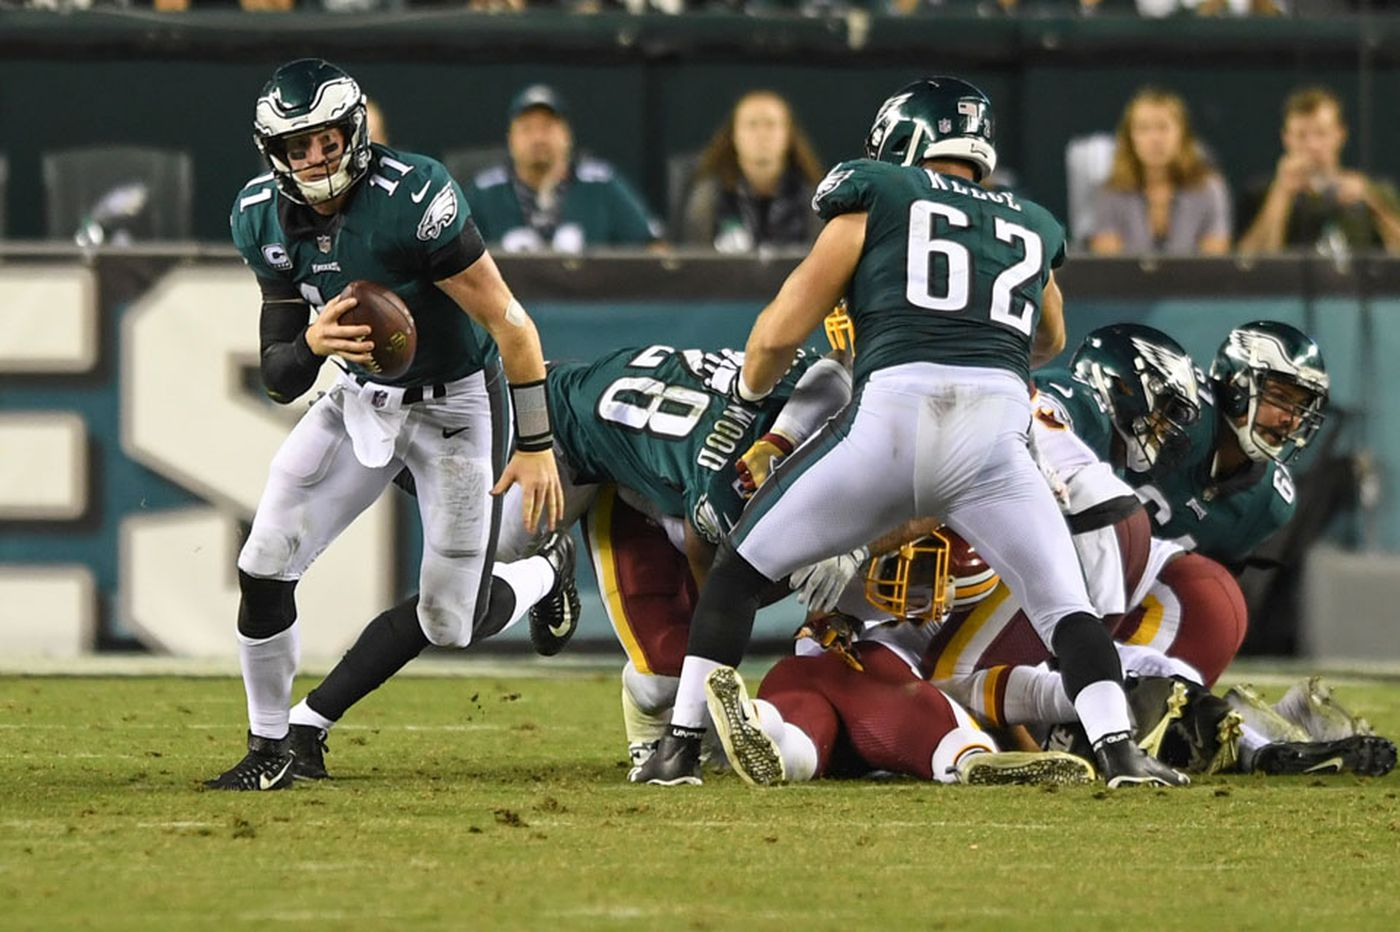 Carson Wentz dazzled in his last Monday night game with his arm and his feet. Can he do it again?